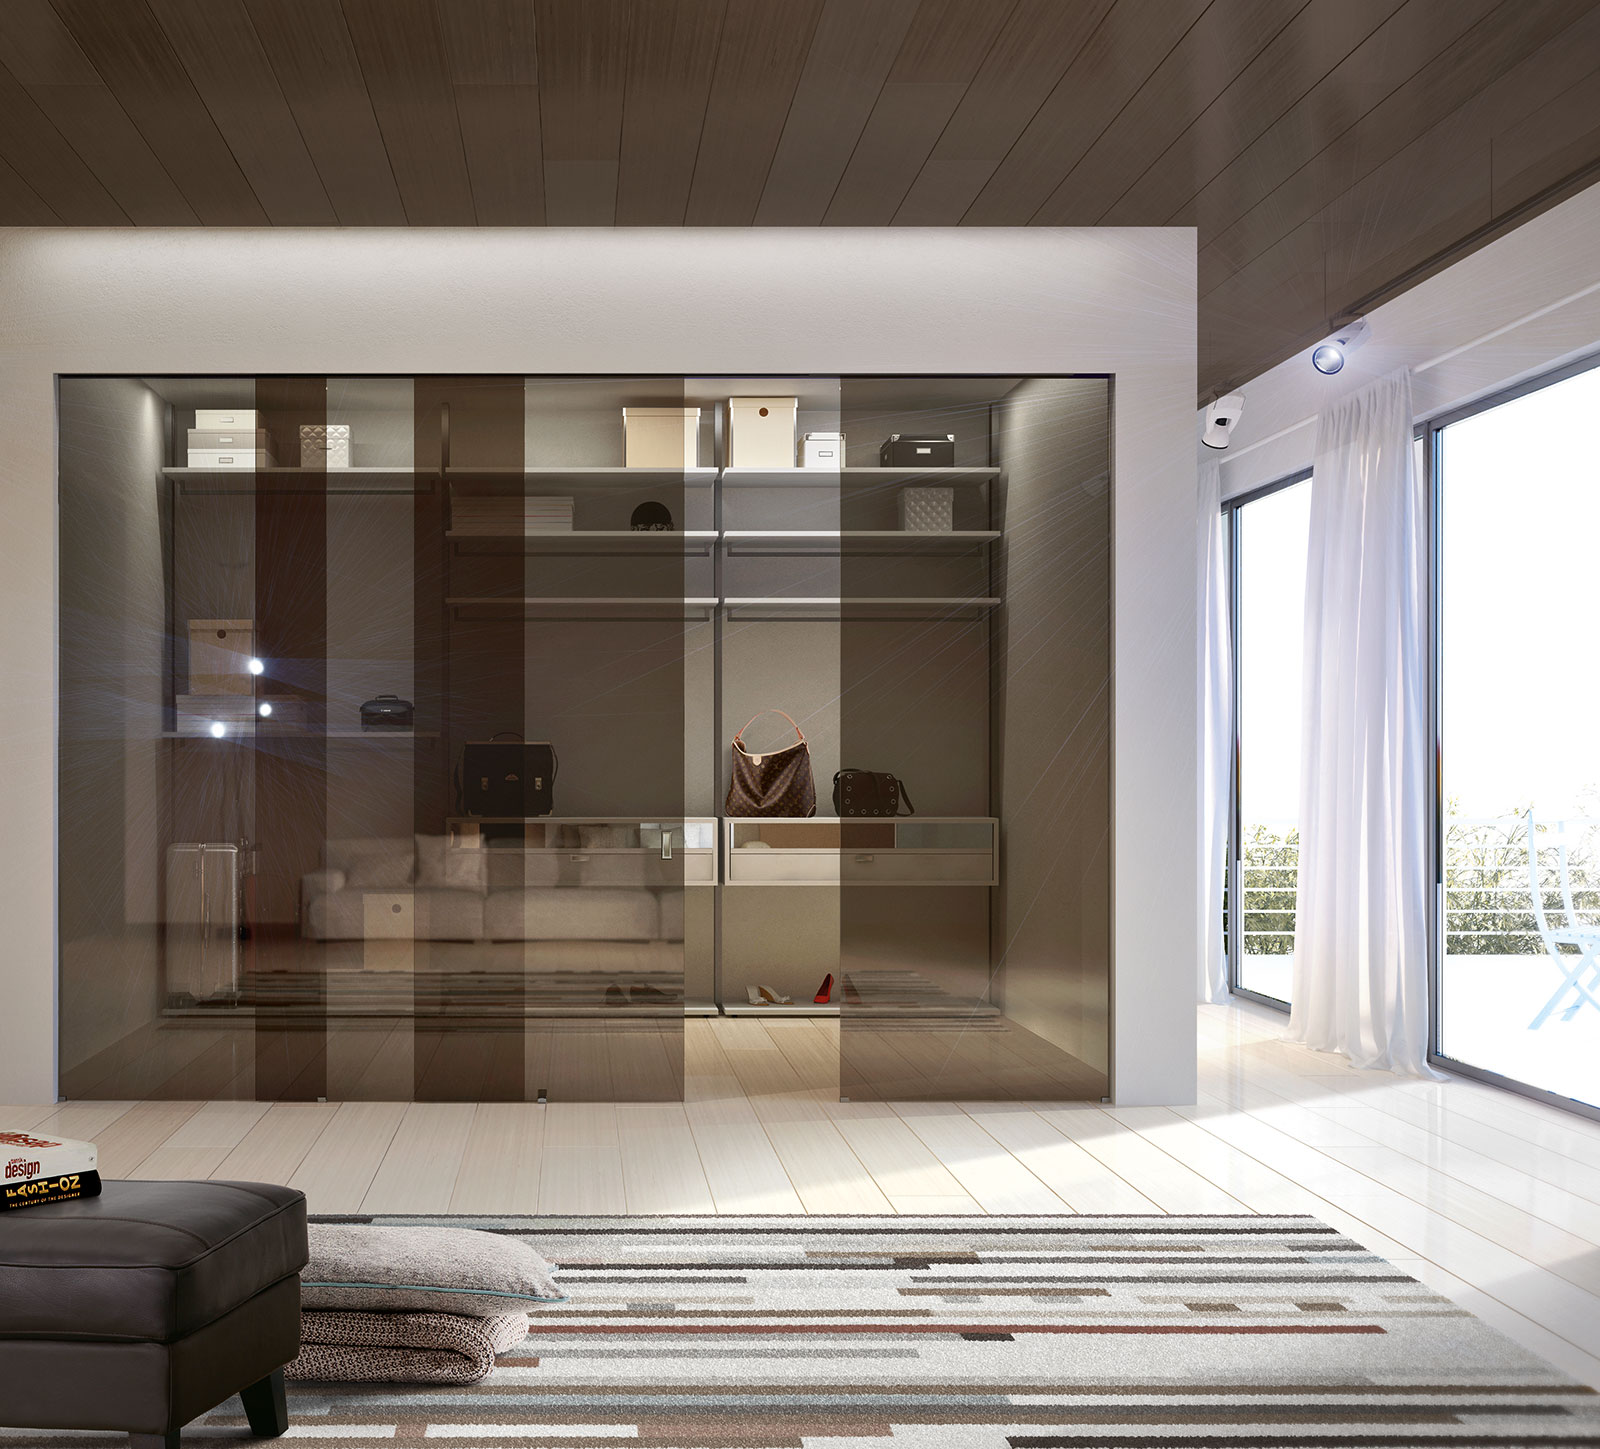 Besam sl500 all glass sliding door system with semi transparent option - External Wall Sliding Doors Bronze Clear Reflective Glass Inside Sliding System